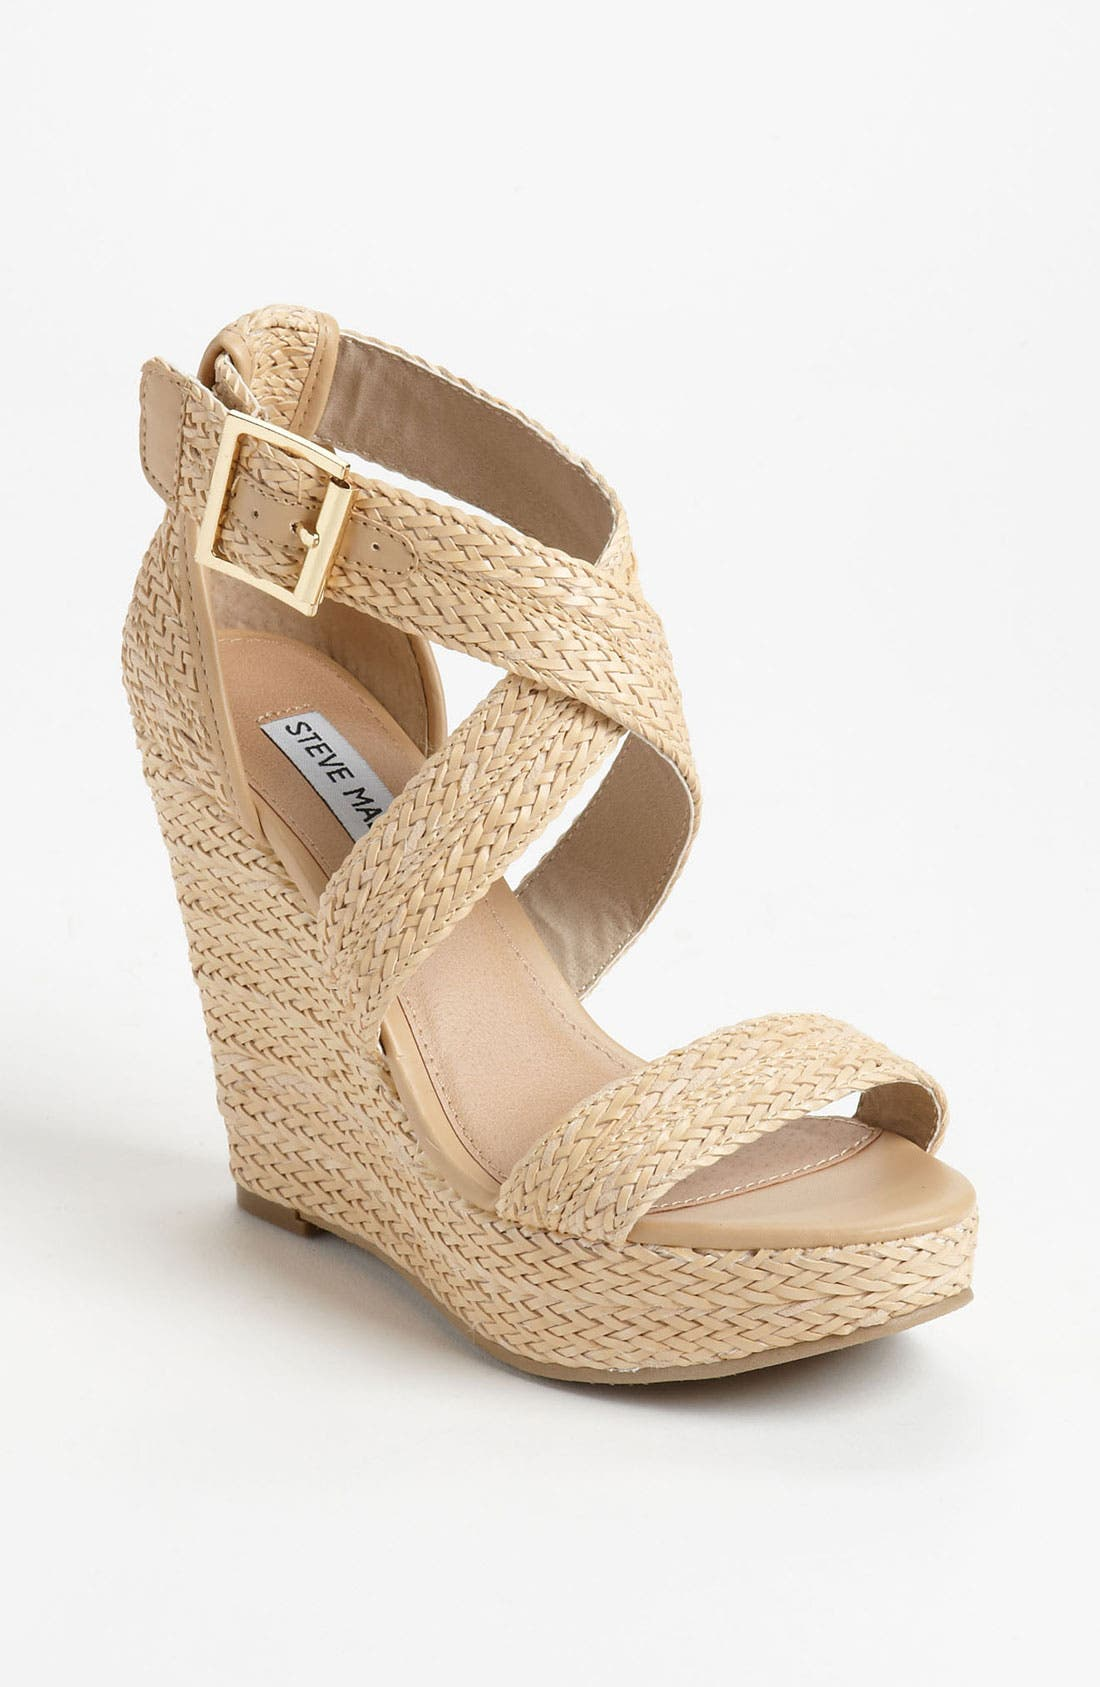 Alternate Image 1 Selected - Steve Madden 'Haywire' Wedge Sandal